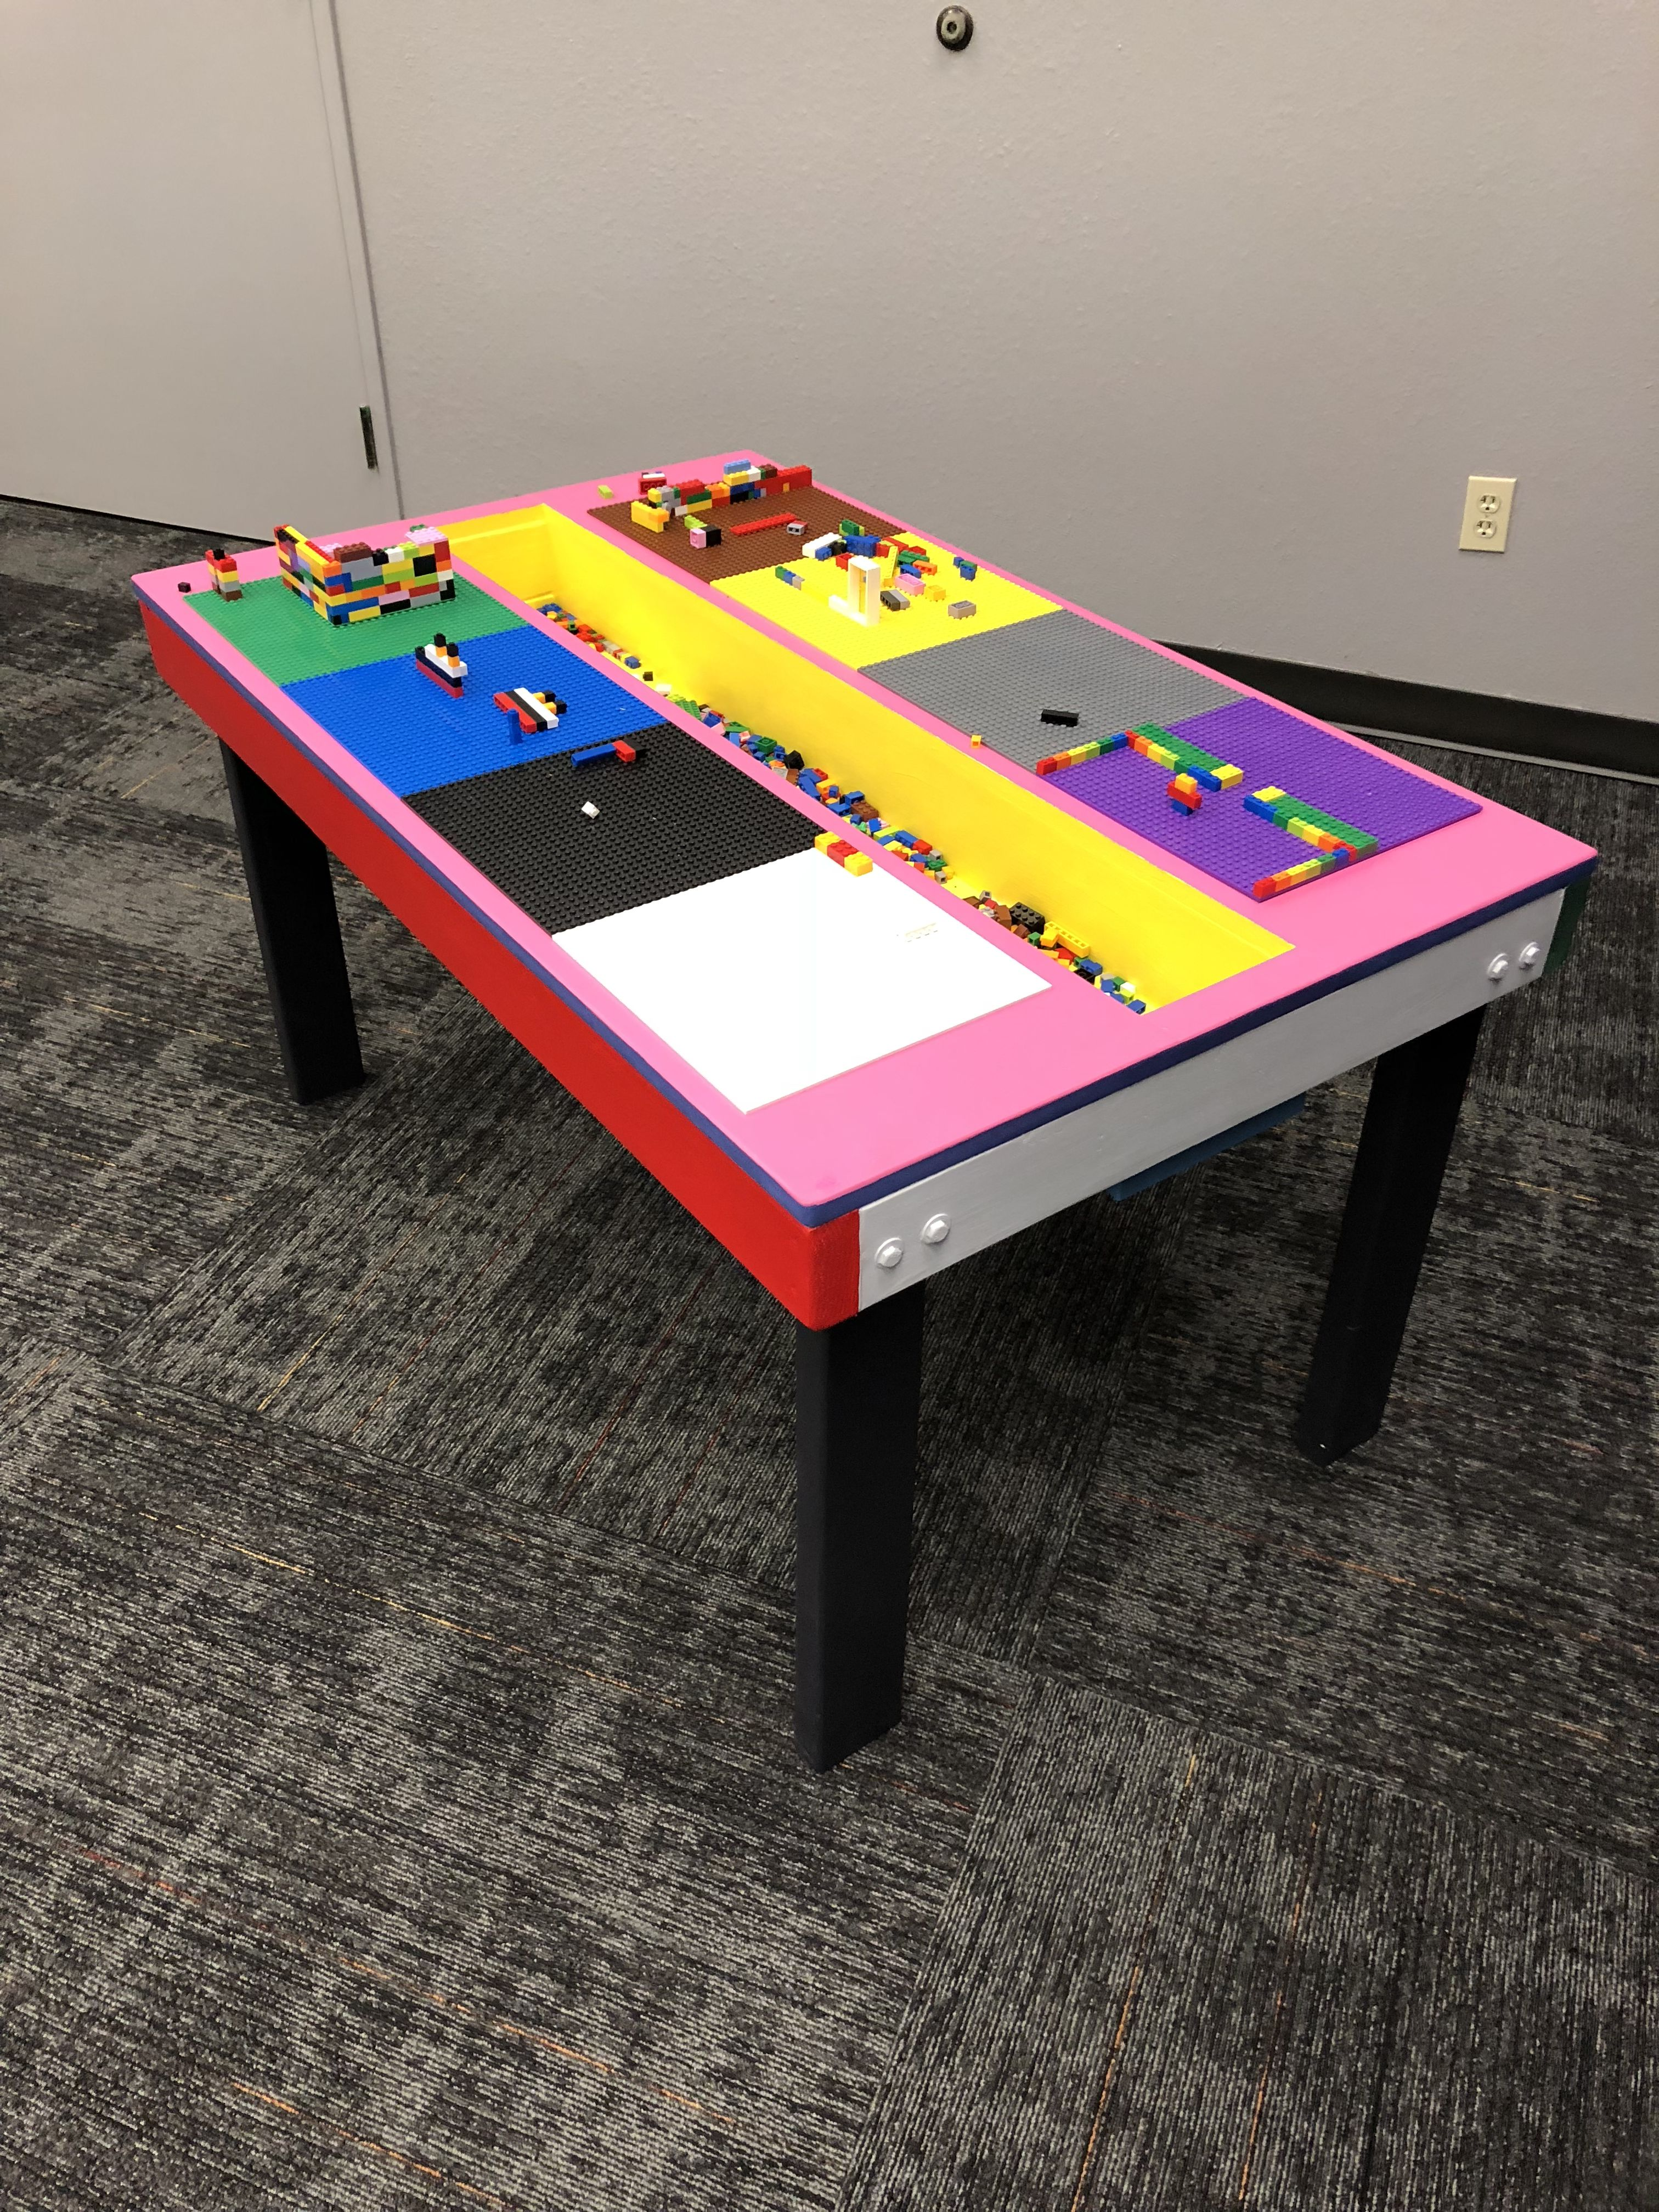 Custom Lego Table Made From Mdf And 2x4 10 Base Plates Built In Tray Kids School Chair Height